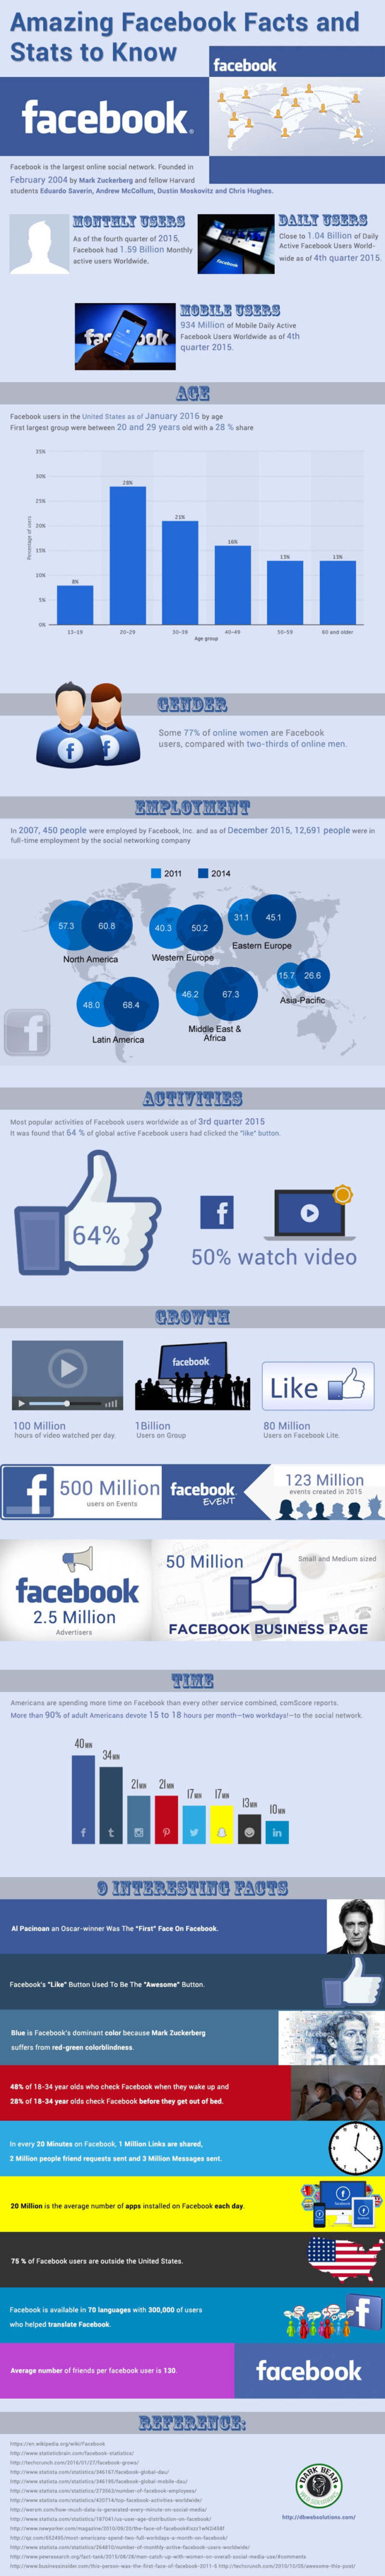 Amazing Facebook Facts - infographic